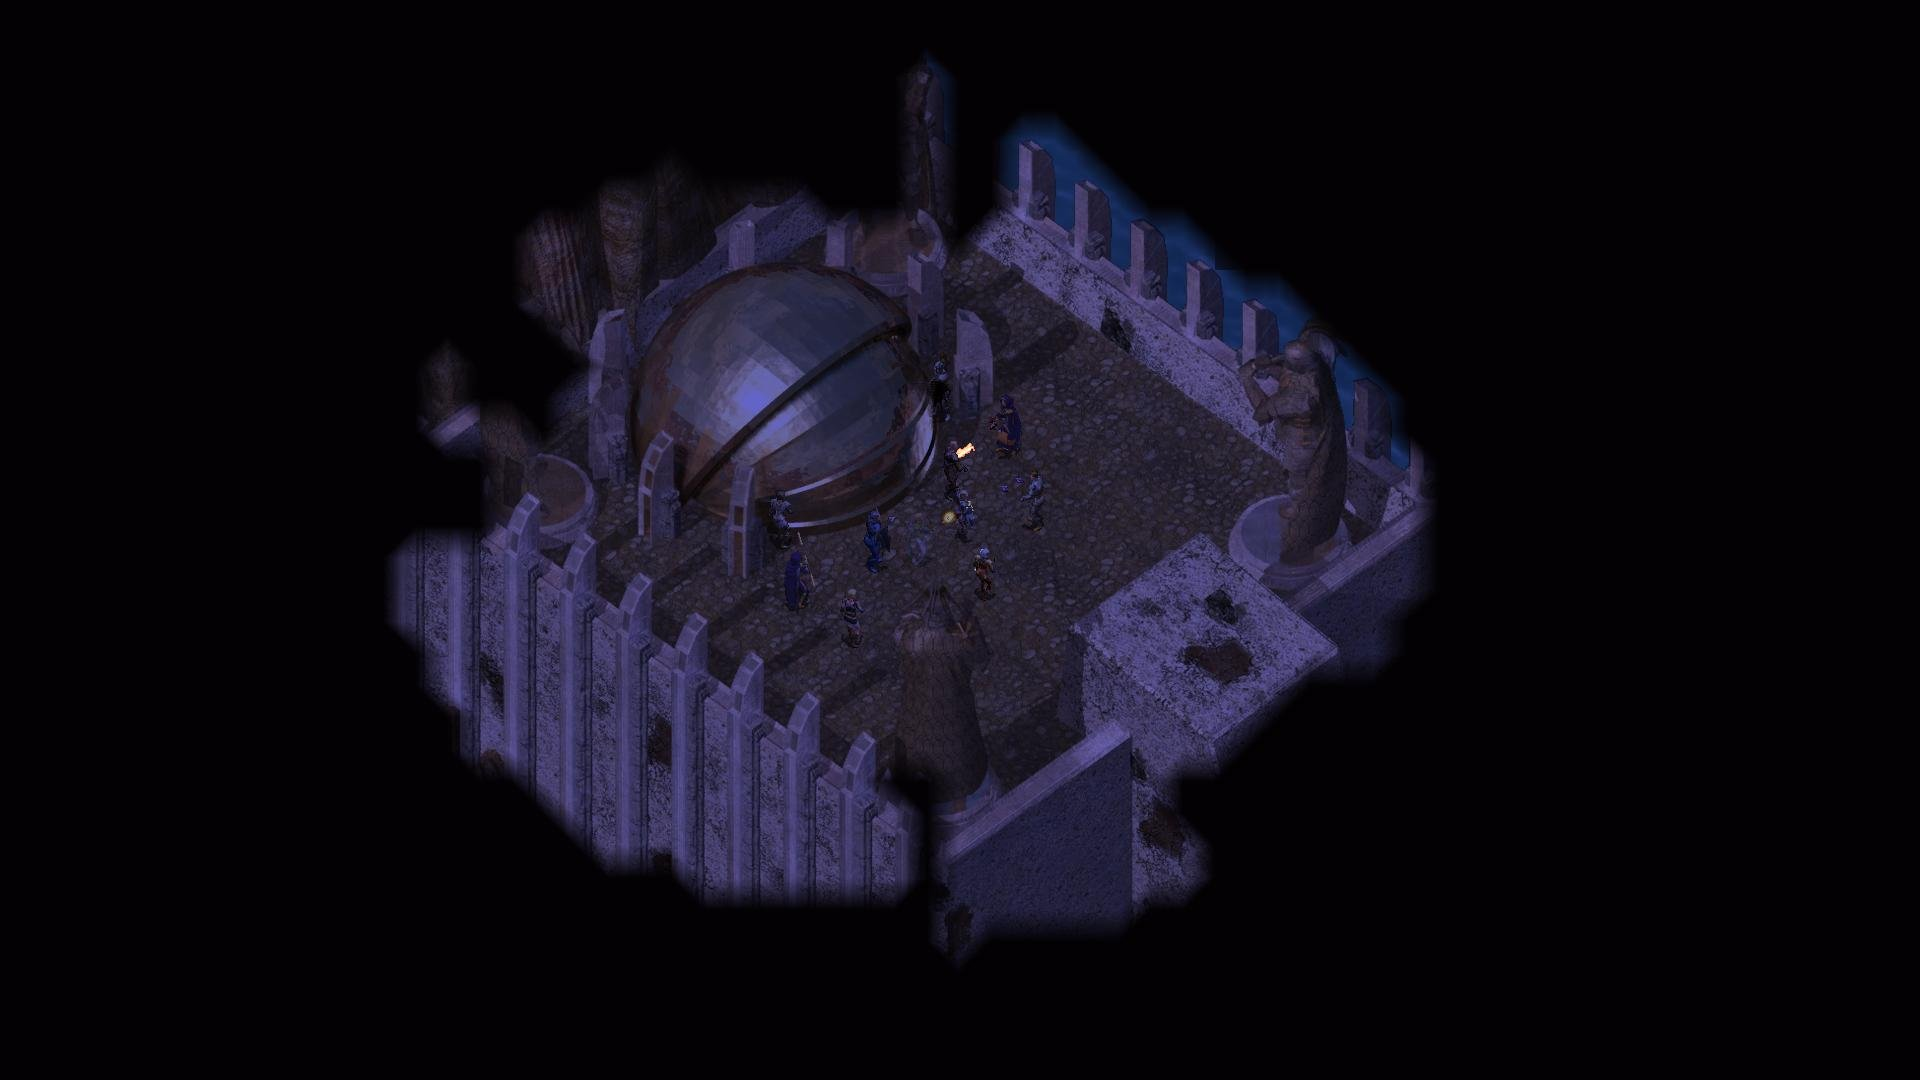 Baldur's Gate 2: Enhanced Edition PC and Mac Release Date Confirmed, First Gameplay Trailer Now Available #28621